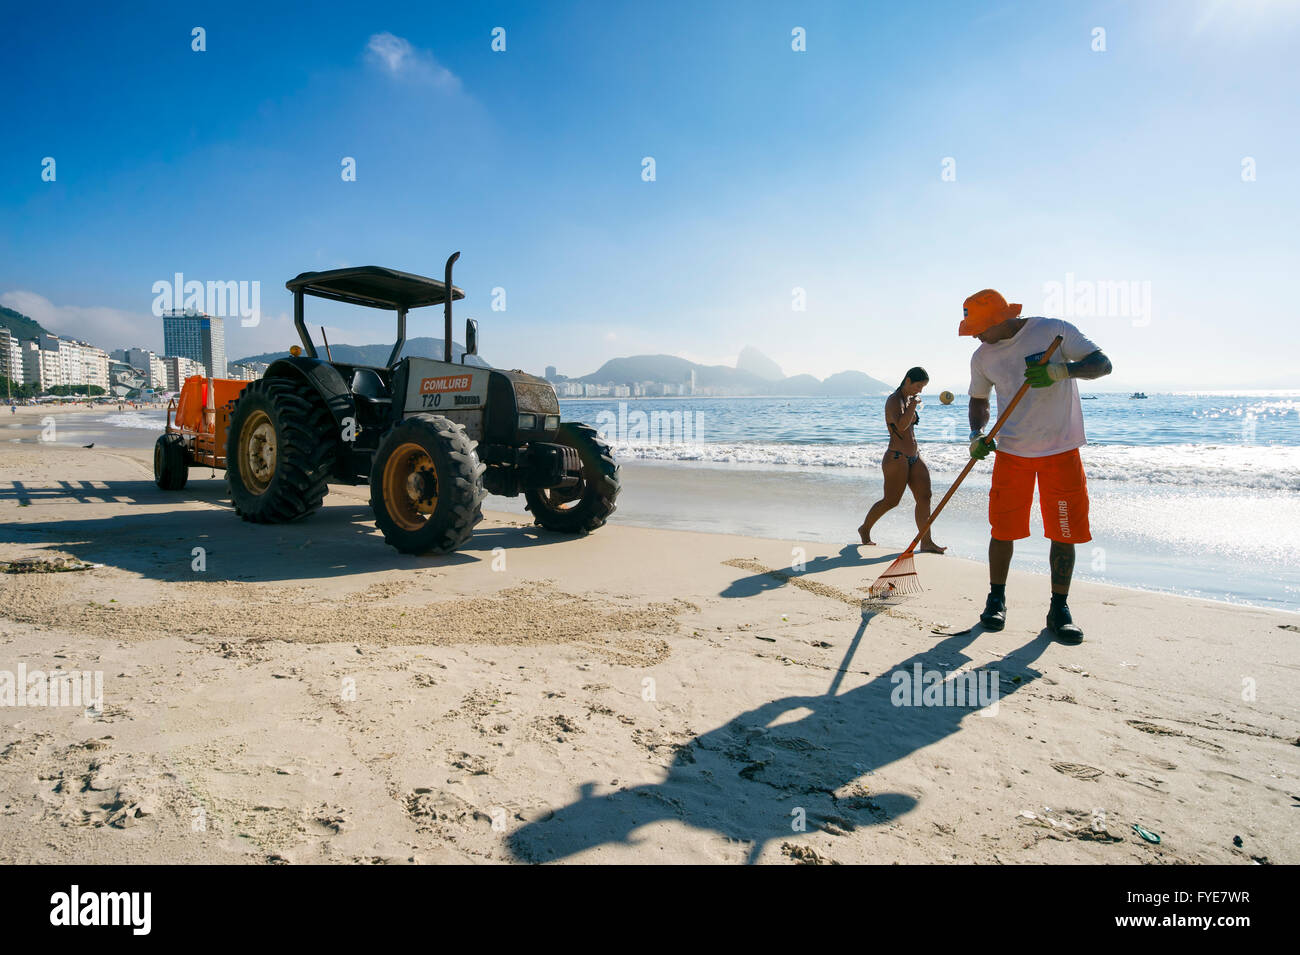 RIO DE JANEIRO - APRIL 3, 2016: Workers from the municipal COMLURB maintenance company clean Copacabana Beach before - Stock Image